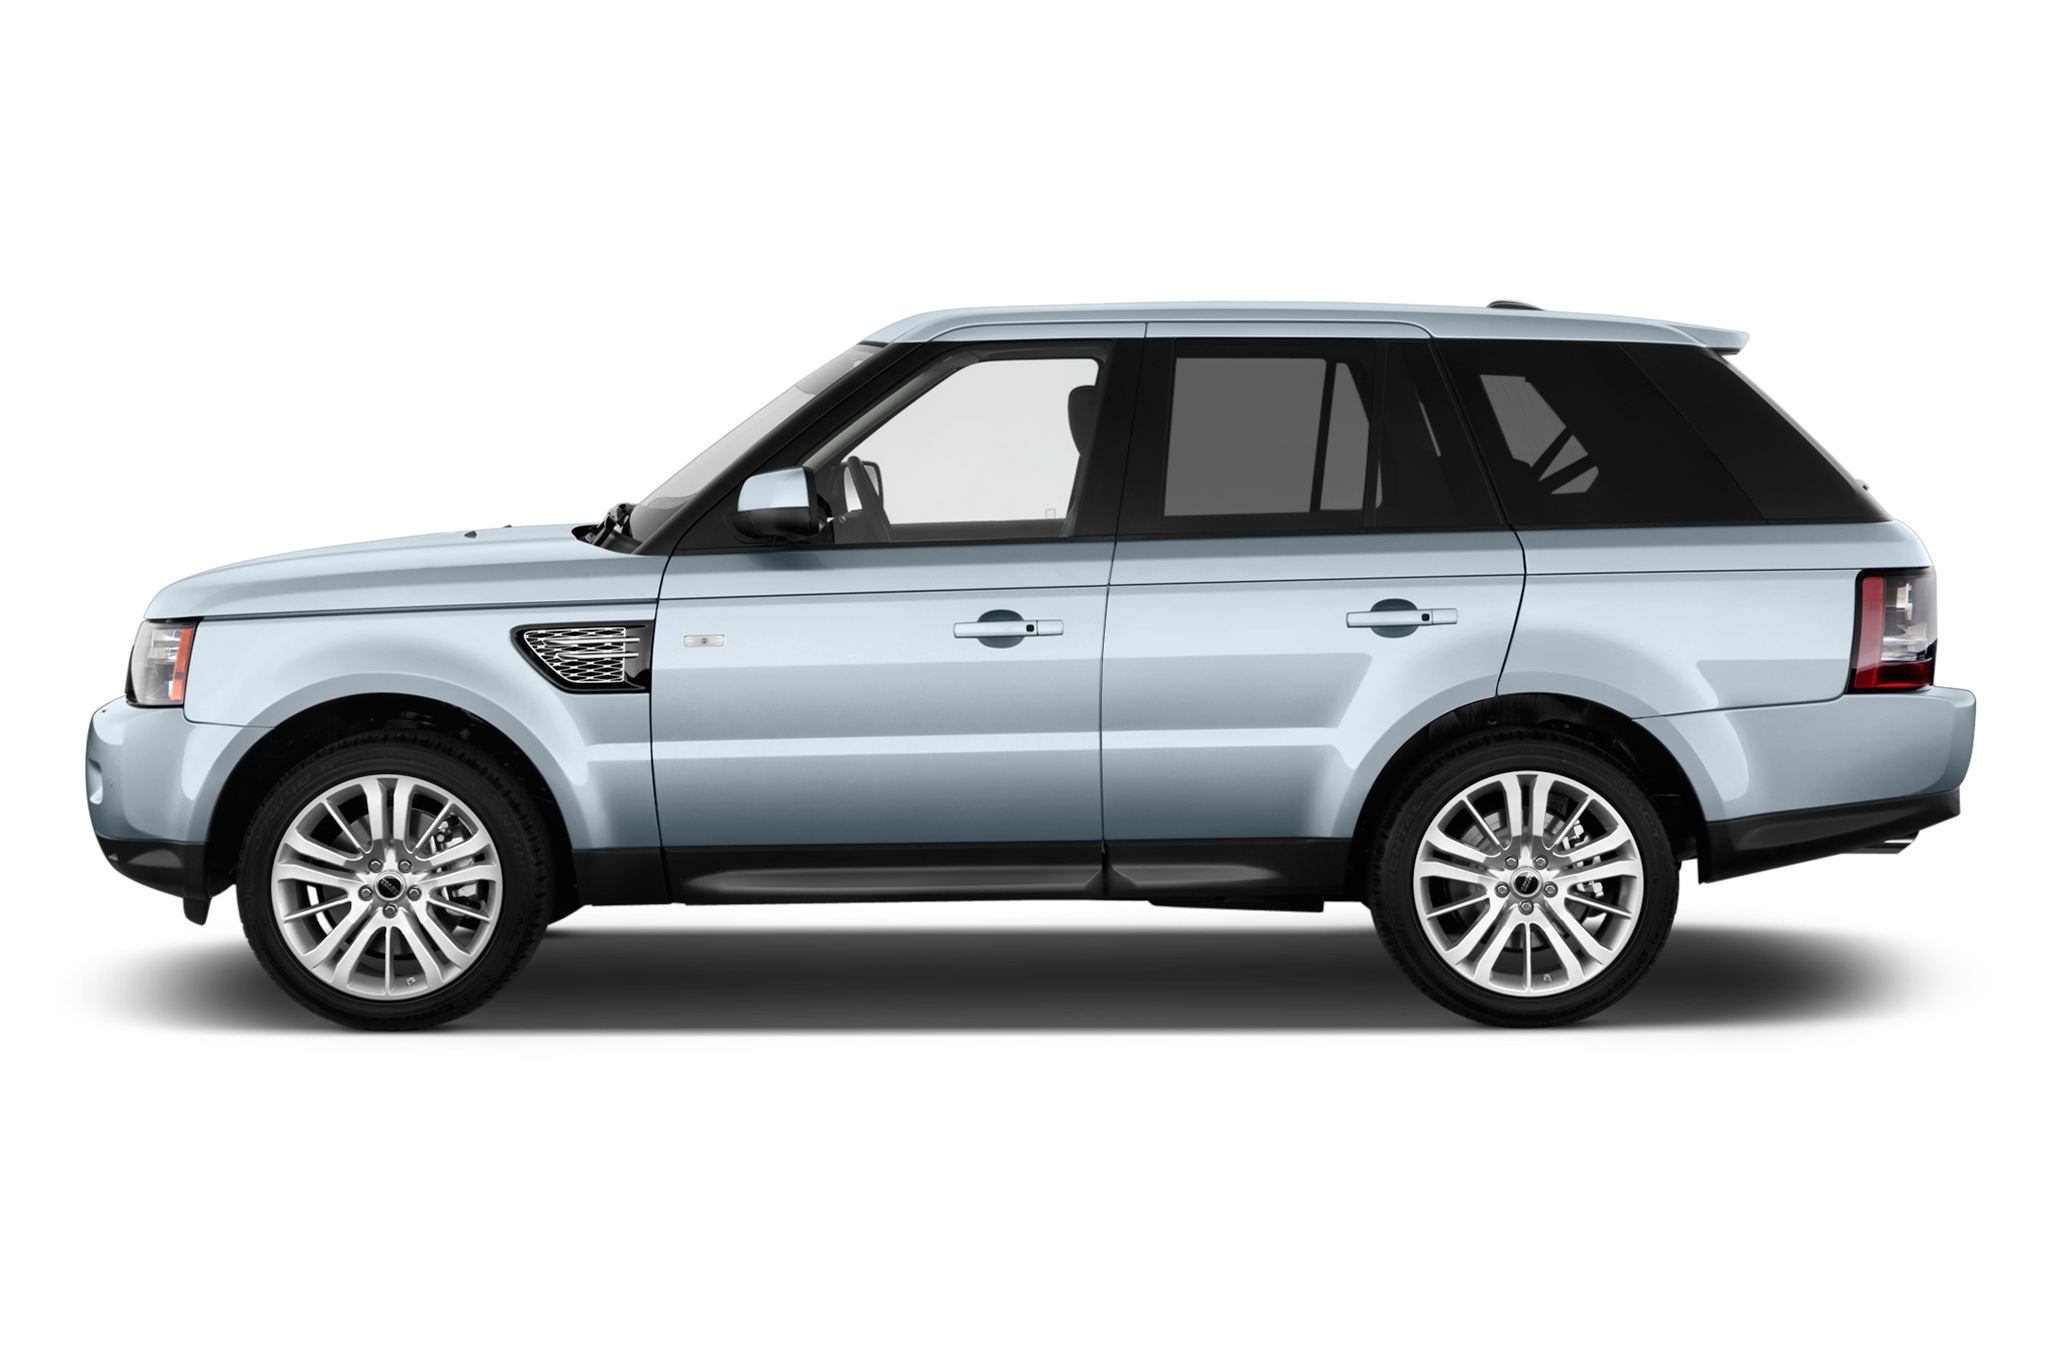 Land Rover Range Rover Sport Transparent Background PNG Image